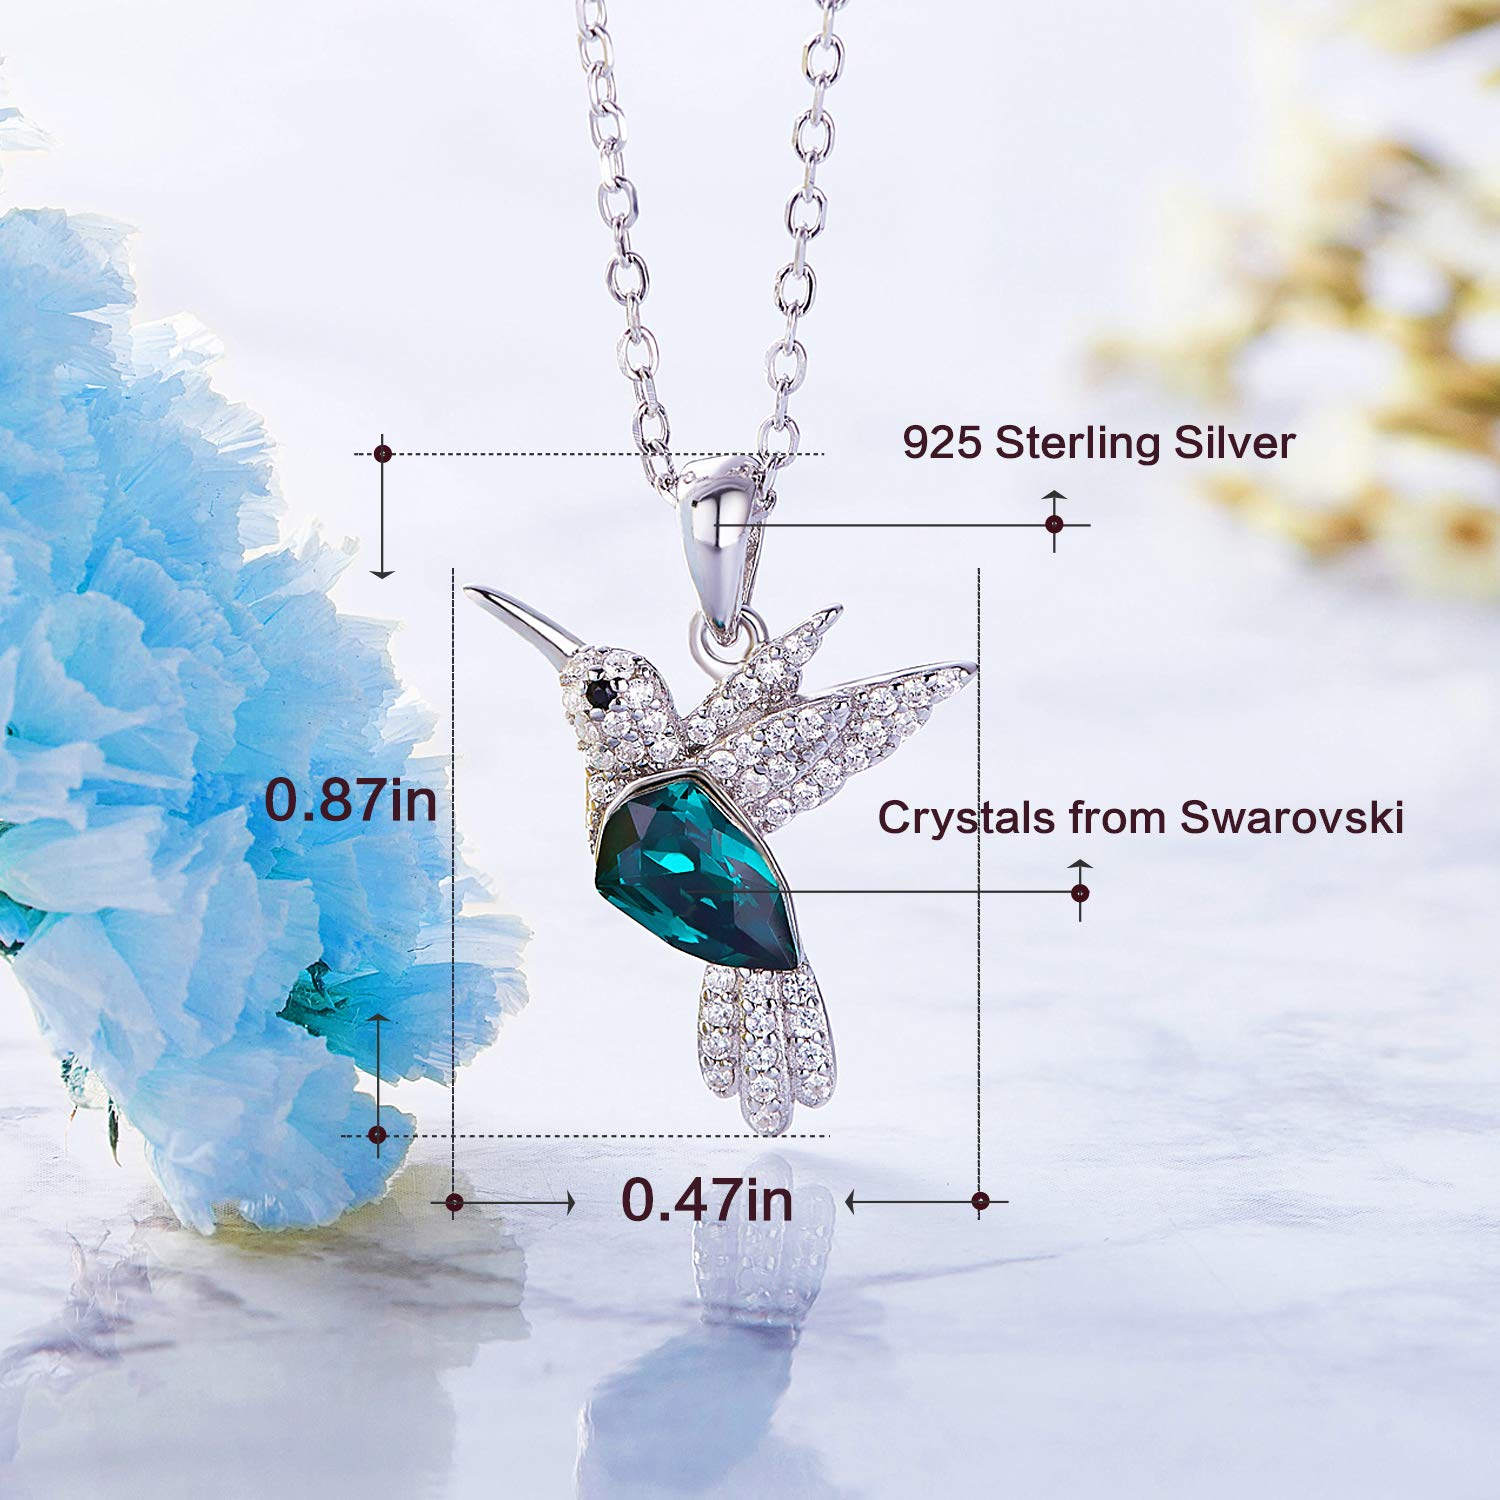 CDE S925 Sterling Silver Necklace Woman Swarovski Crystals Pendant Necklaces Hummingbird Fine Jewelry Gift for Her by CDE (Image #6)